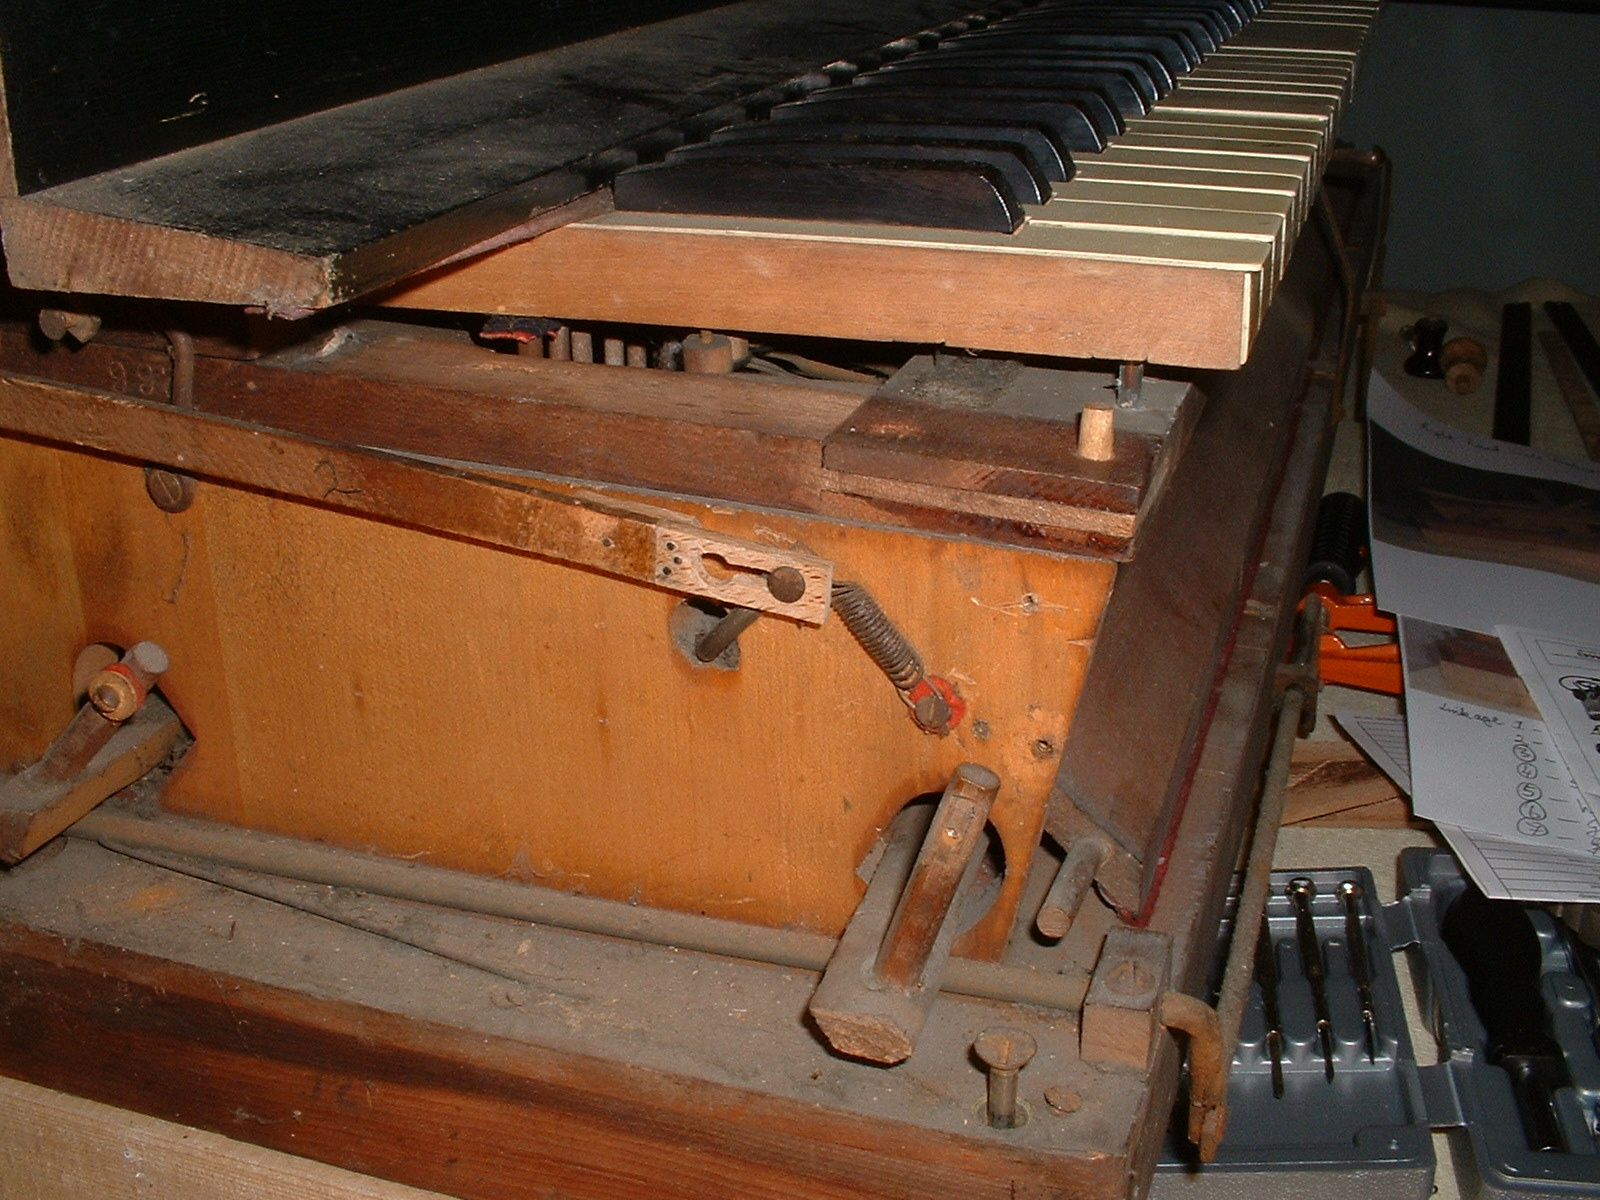 Sub-bass linkage repaired and reinstated